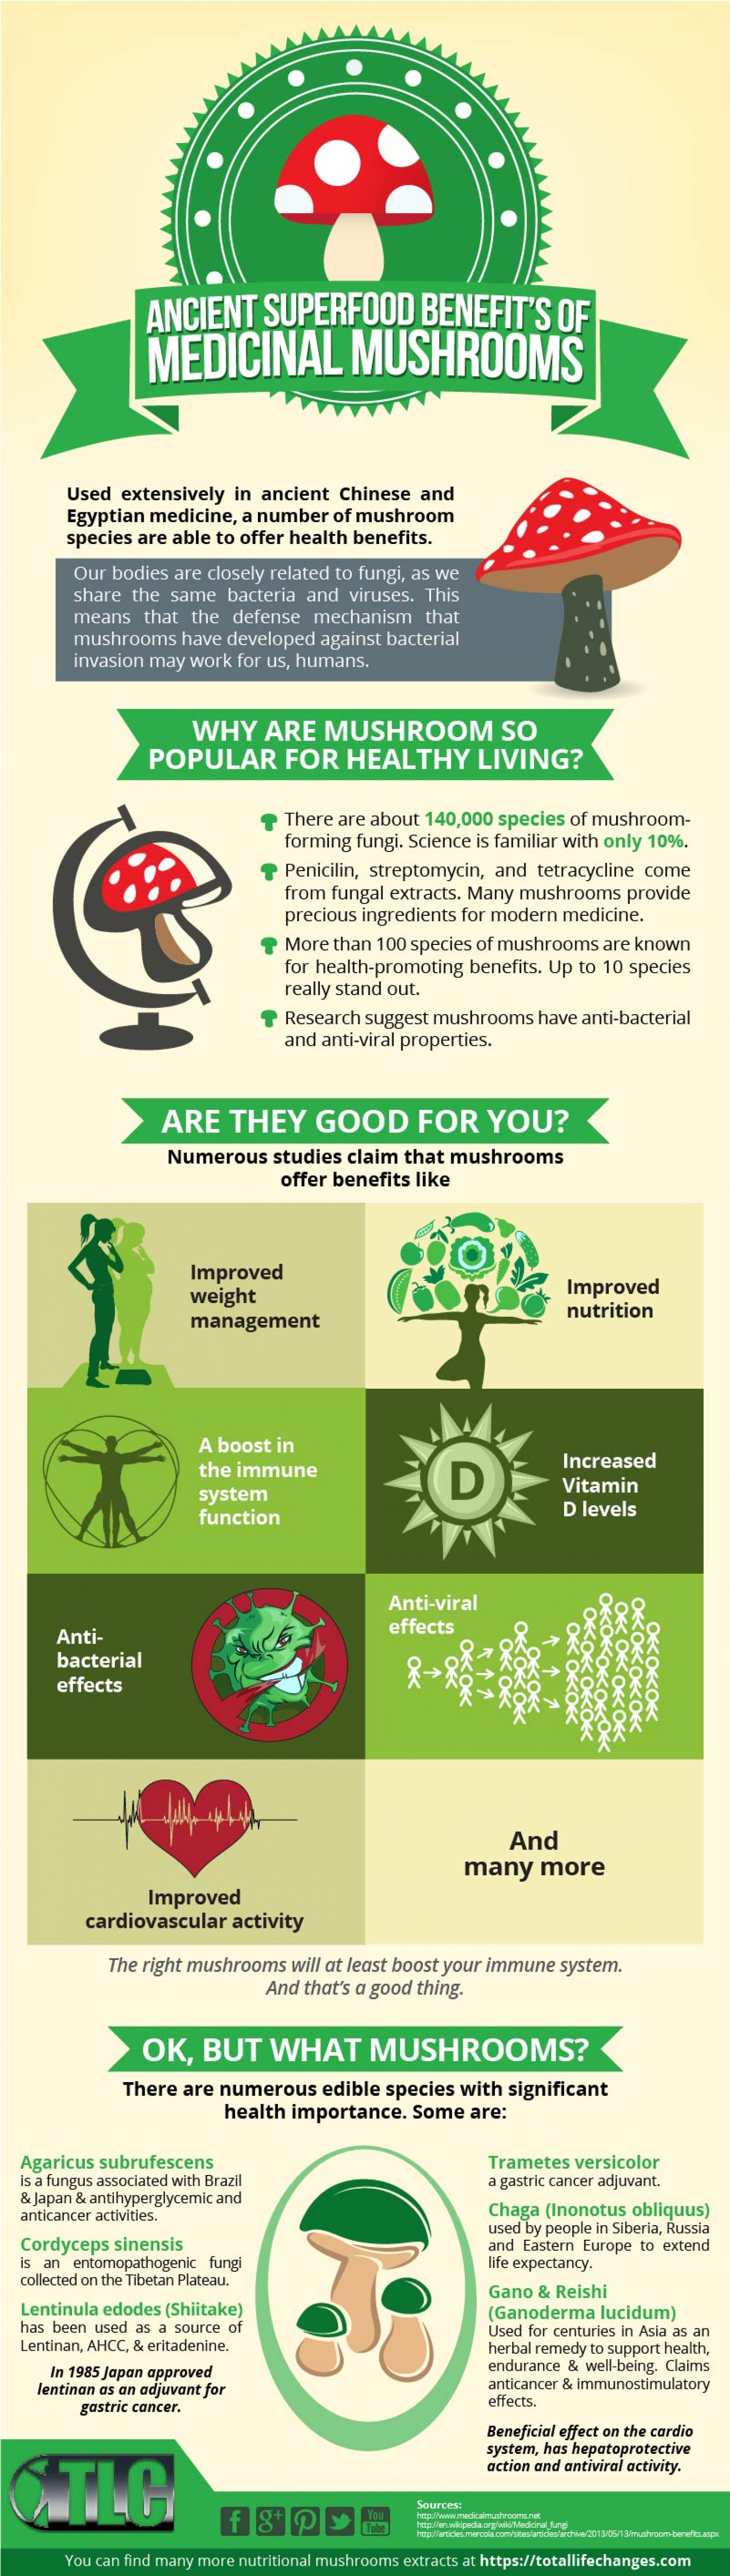 The Ancient Superfood Benefits of Medicinal Mushrooms Infographic